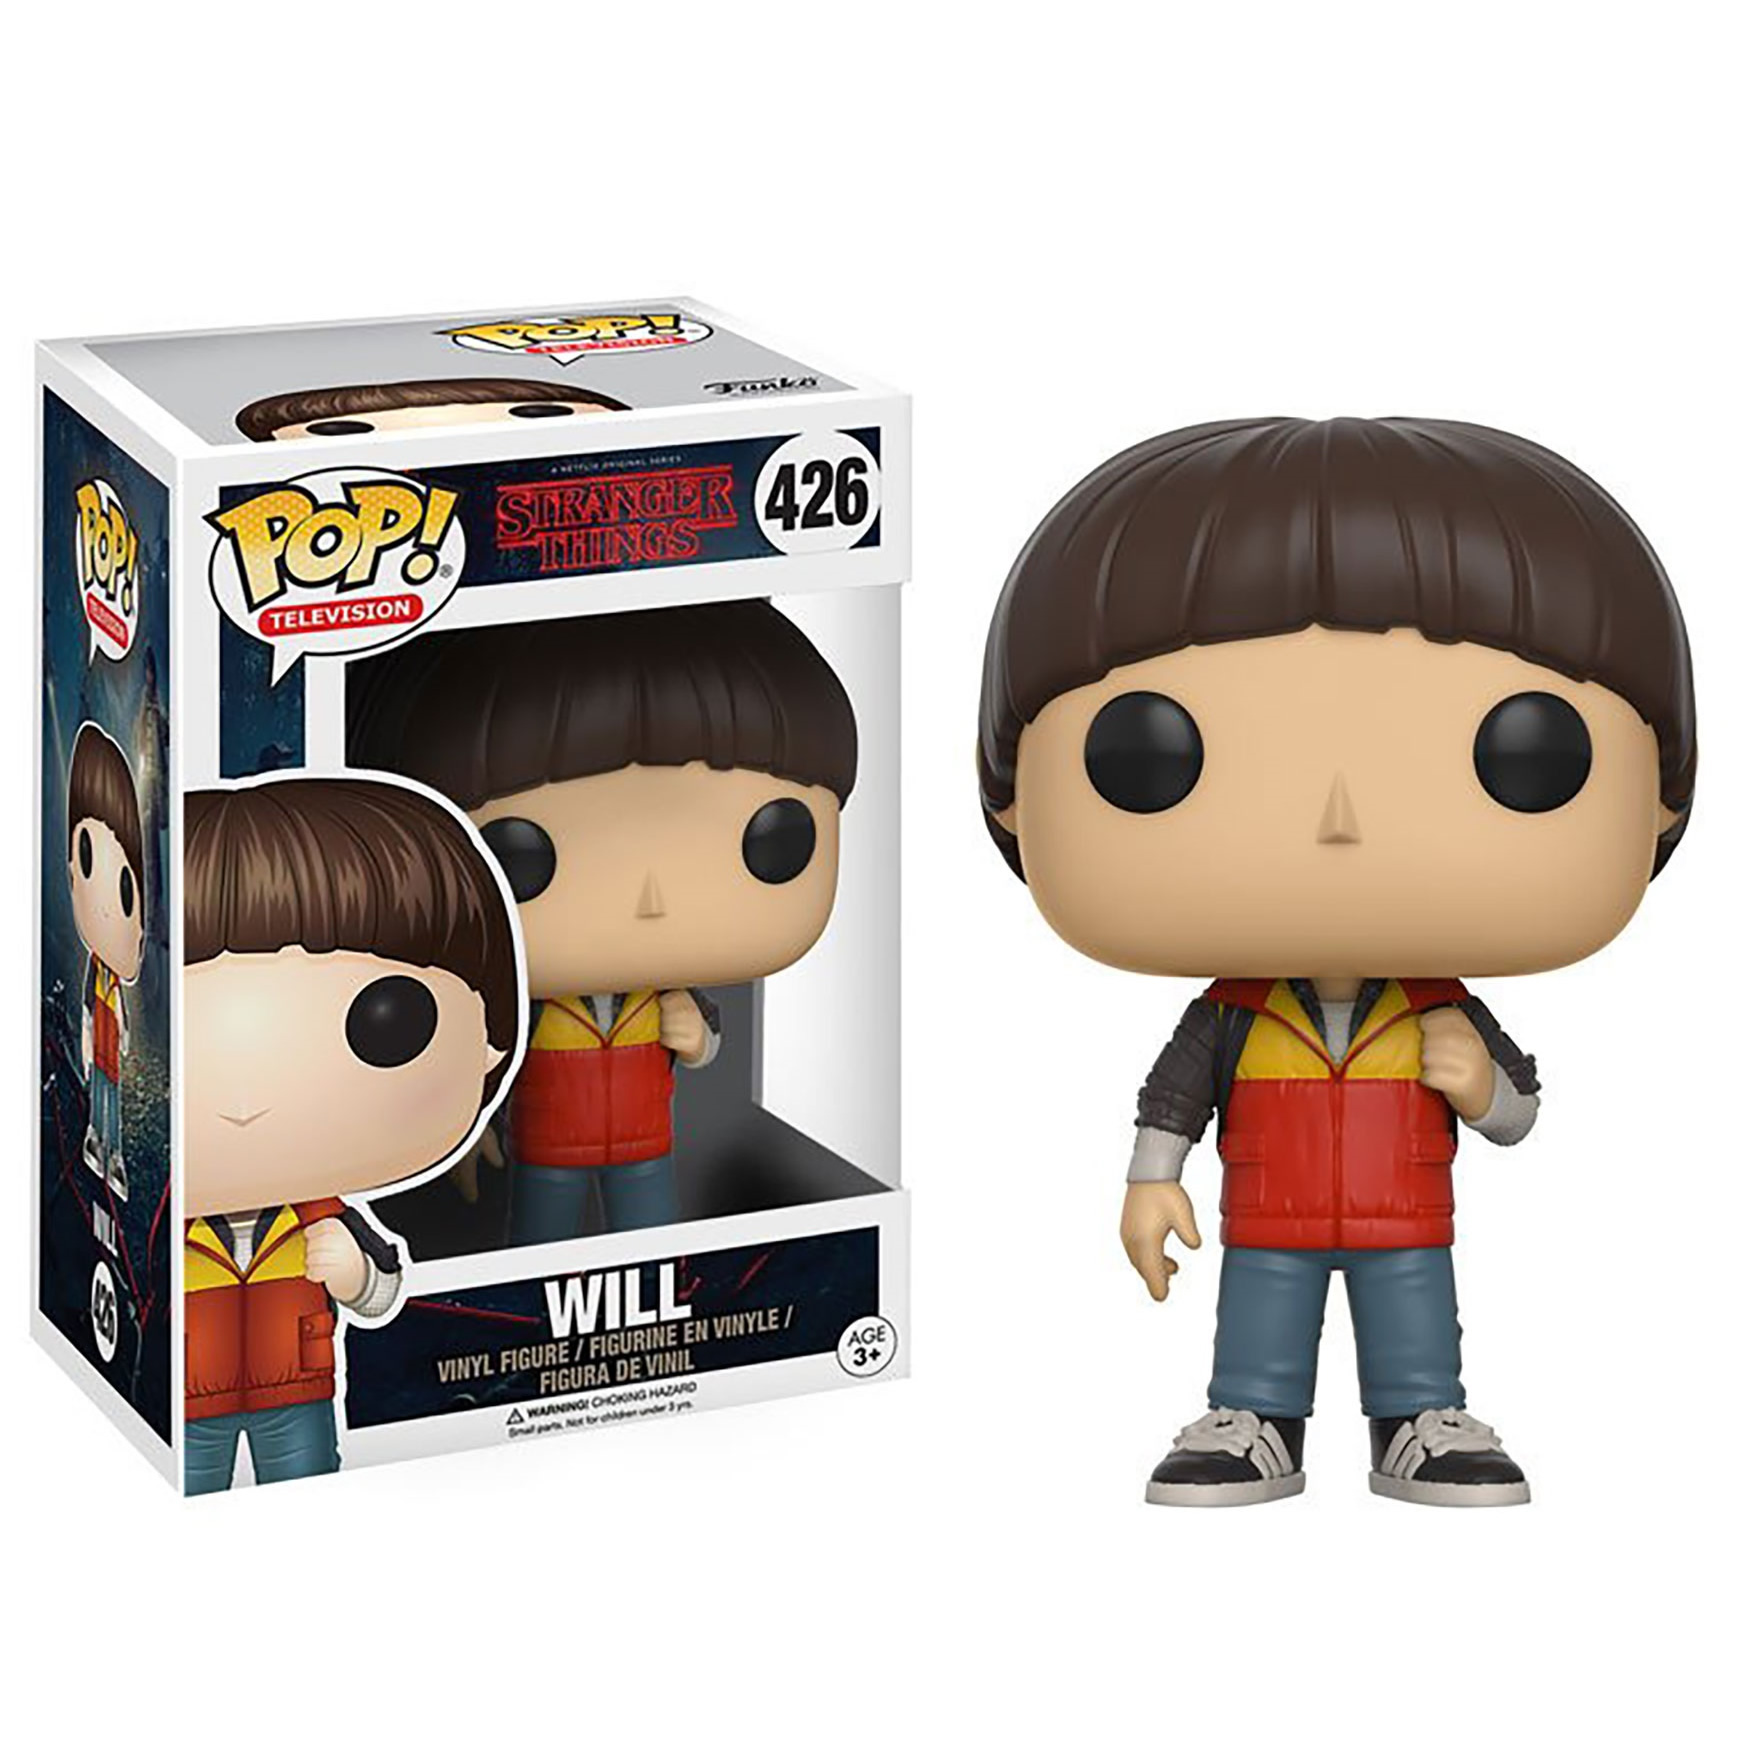 Funko POP Will Stranger Things Television 426